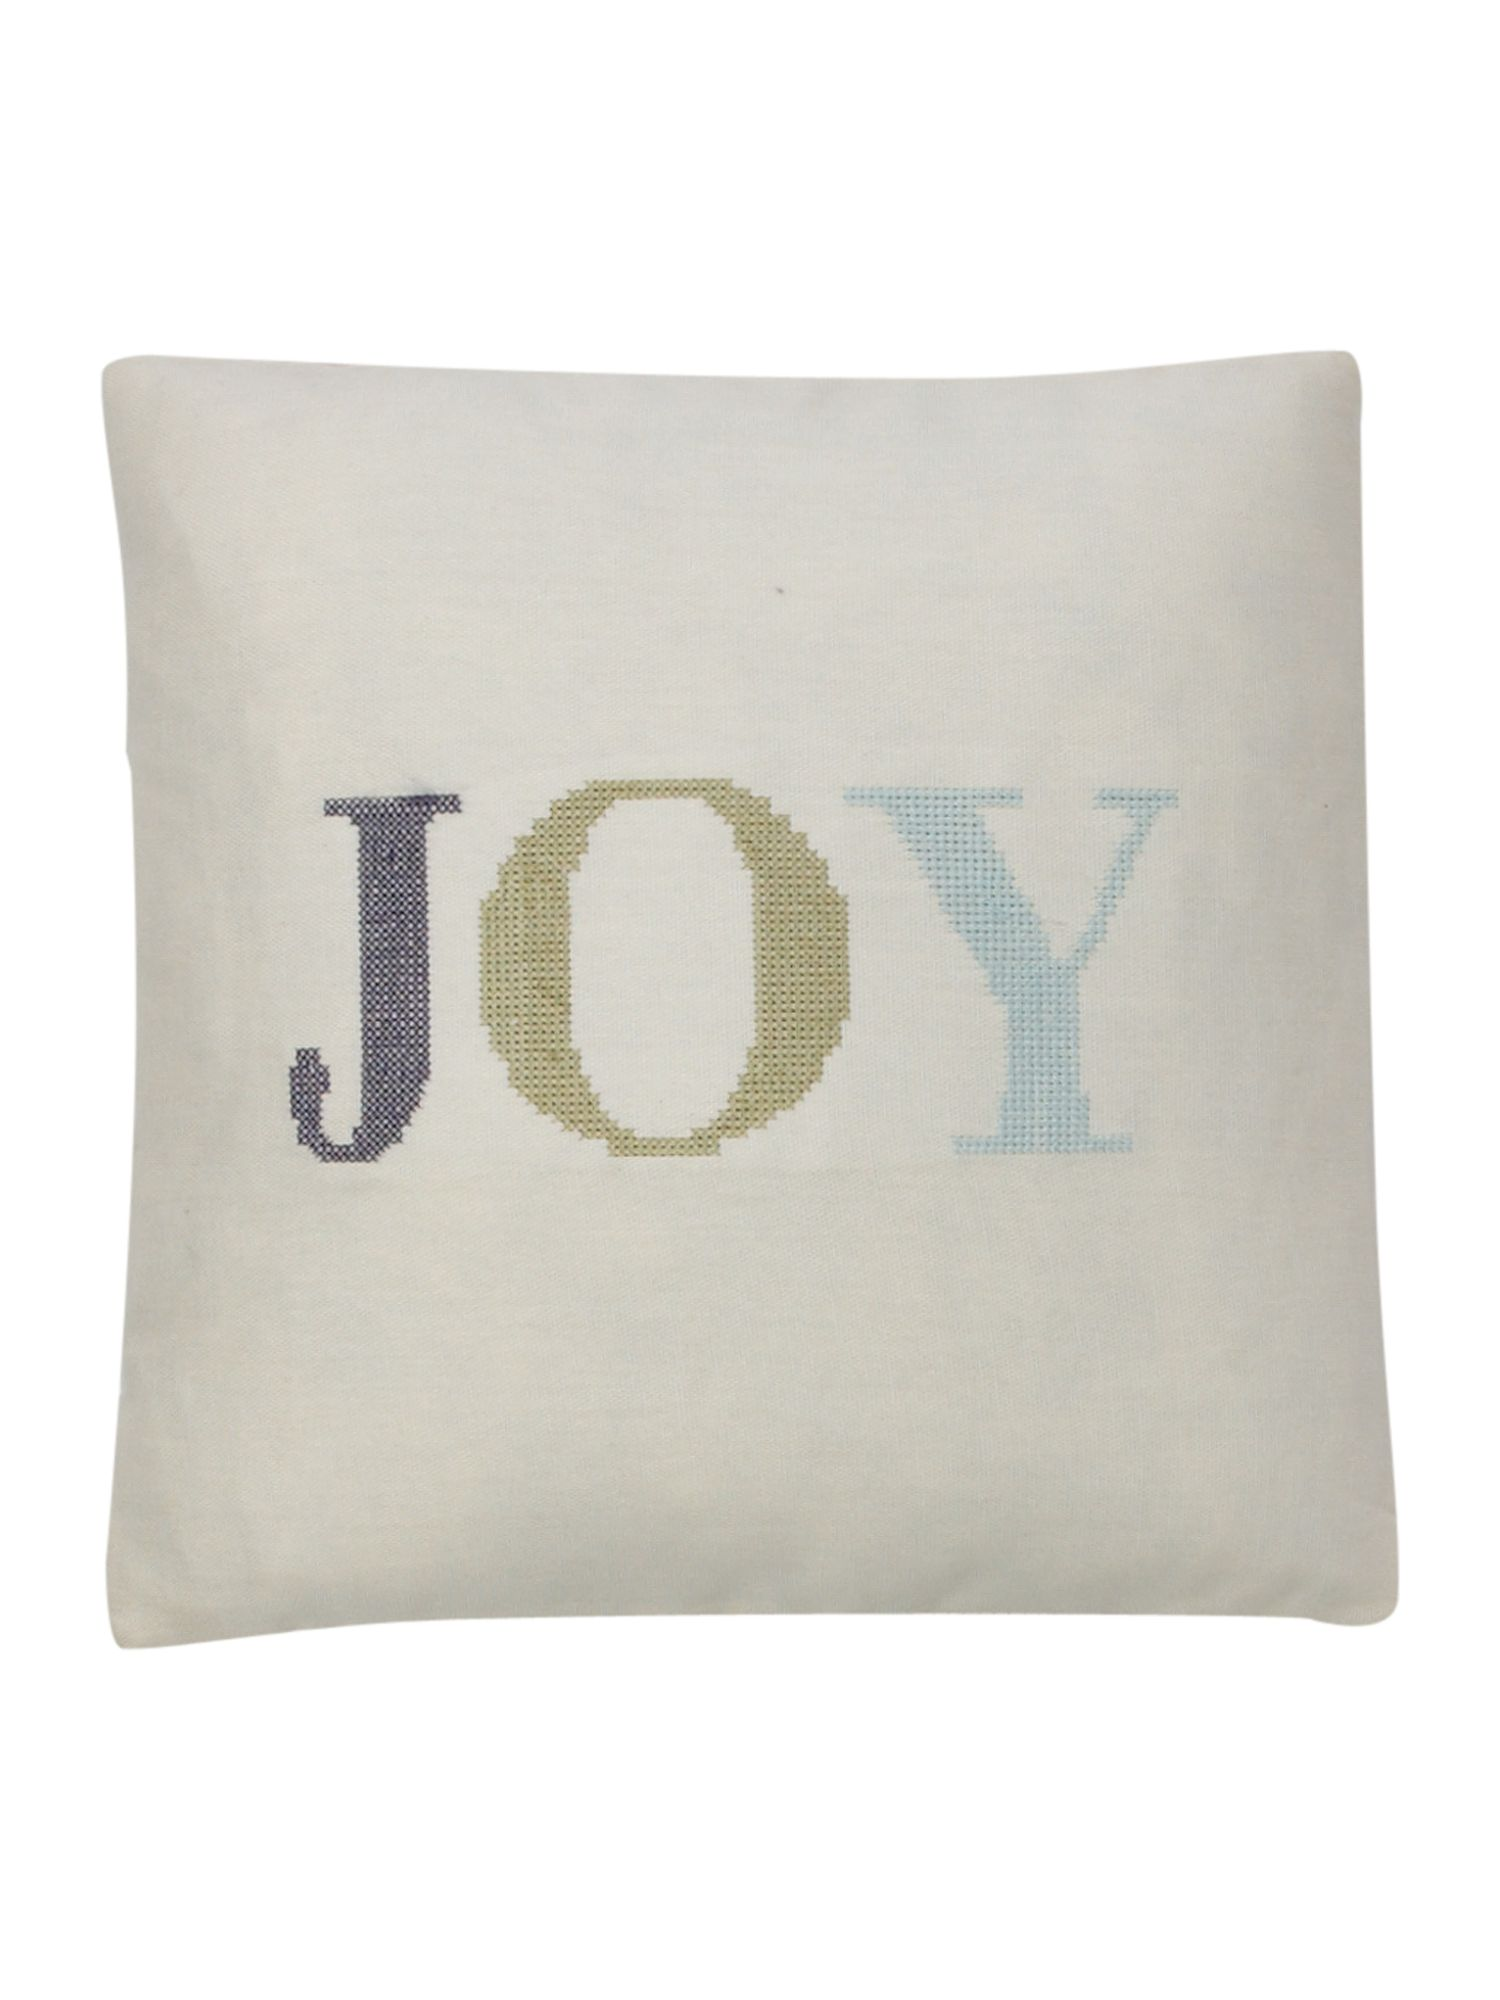 Joy cushion